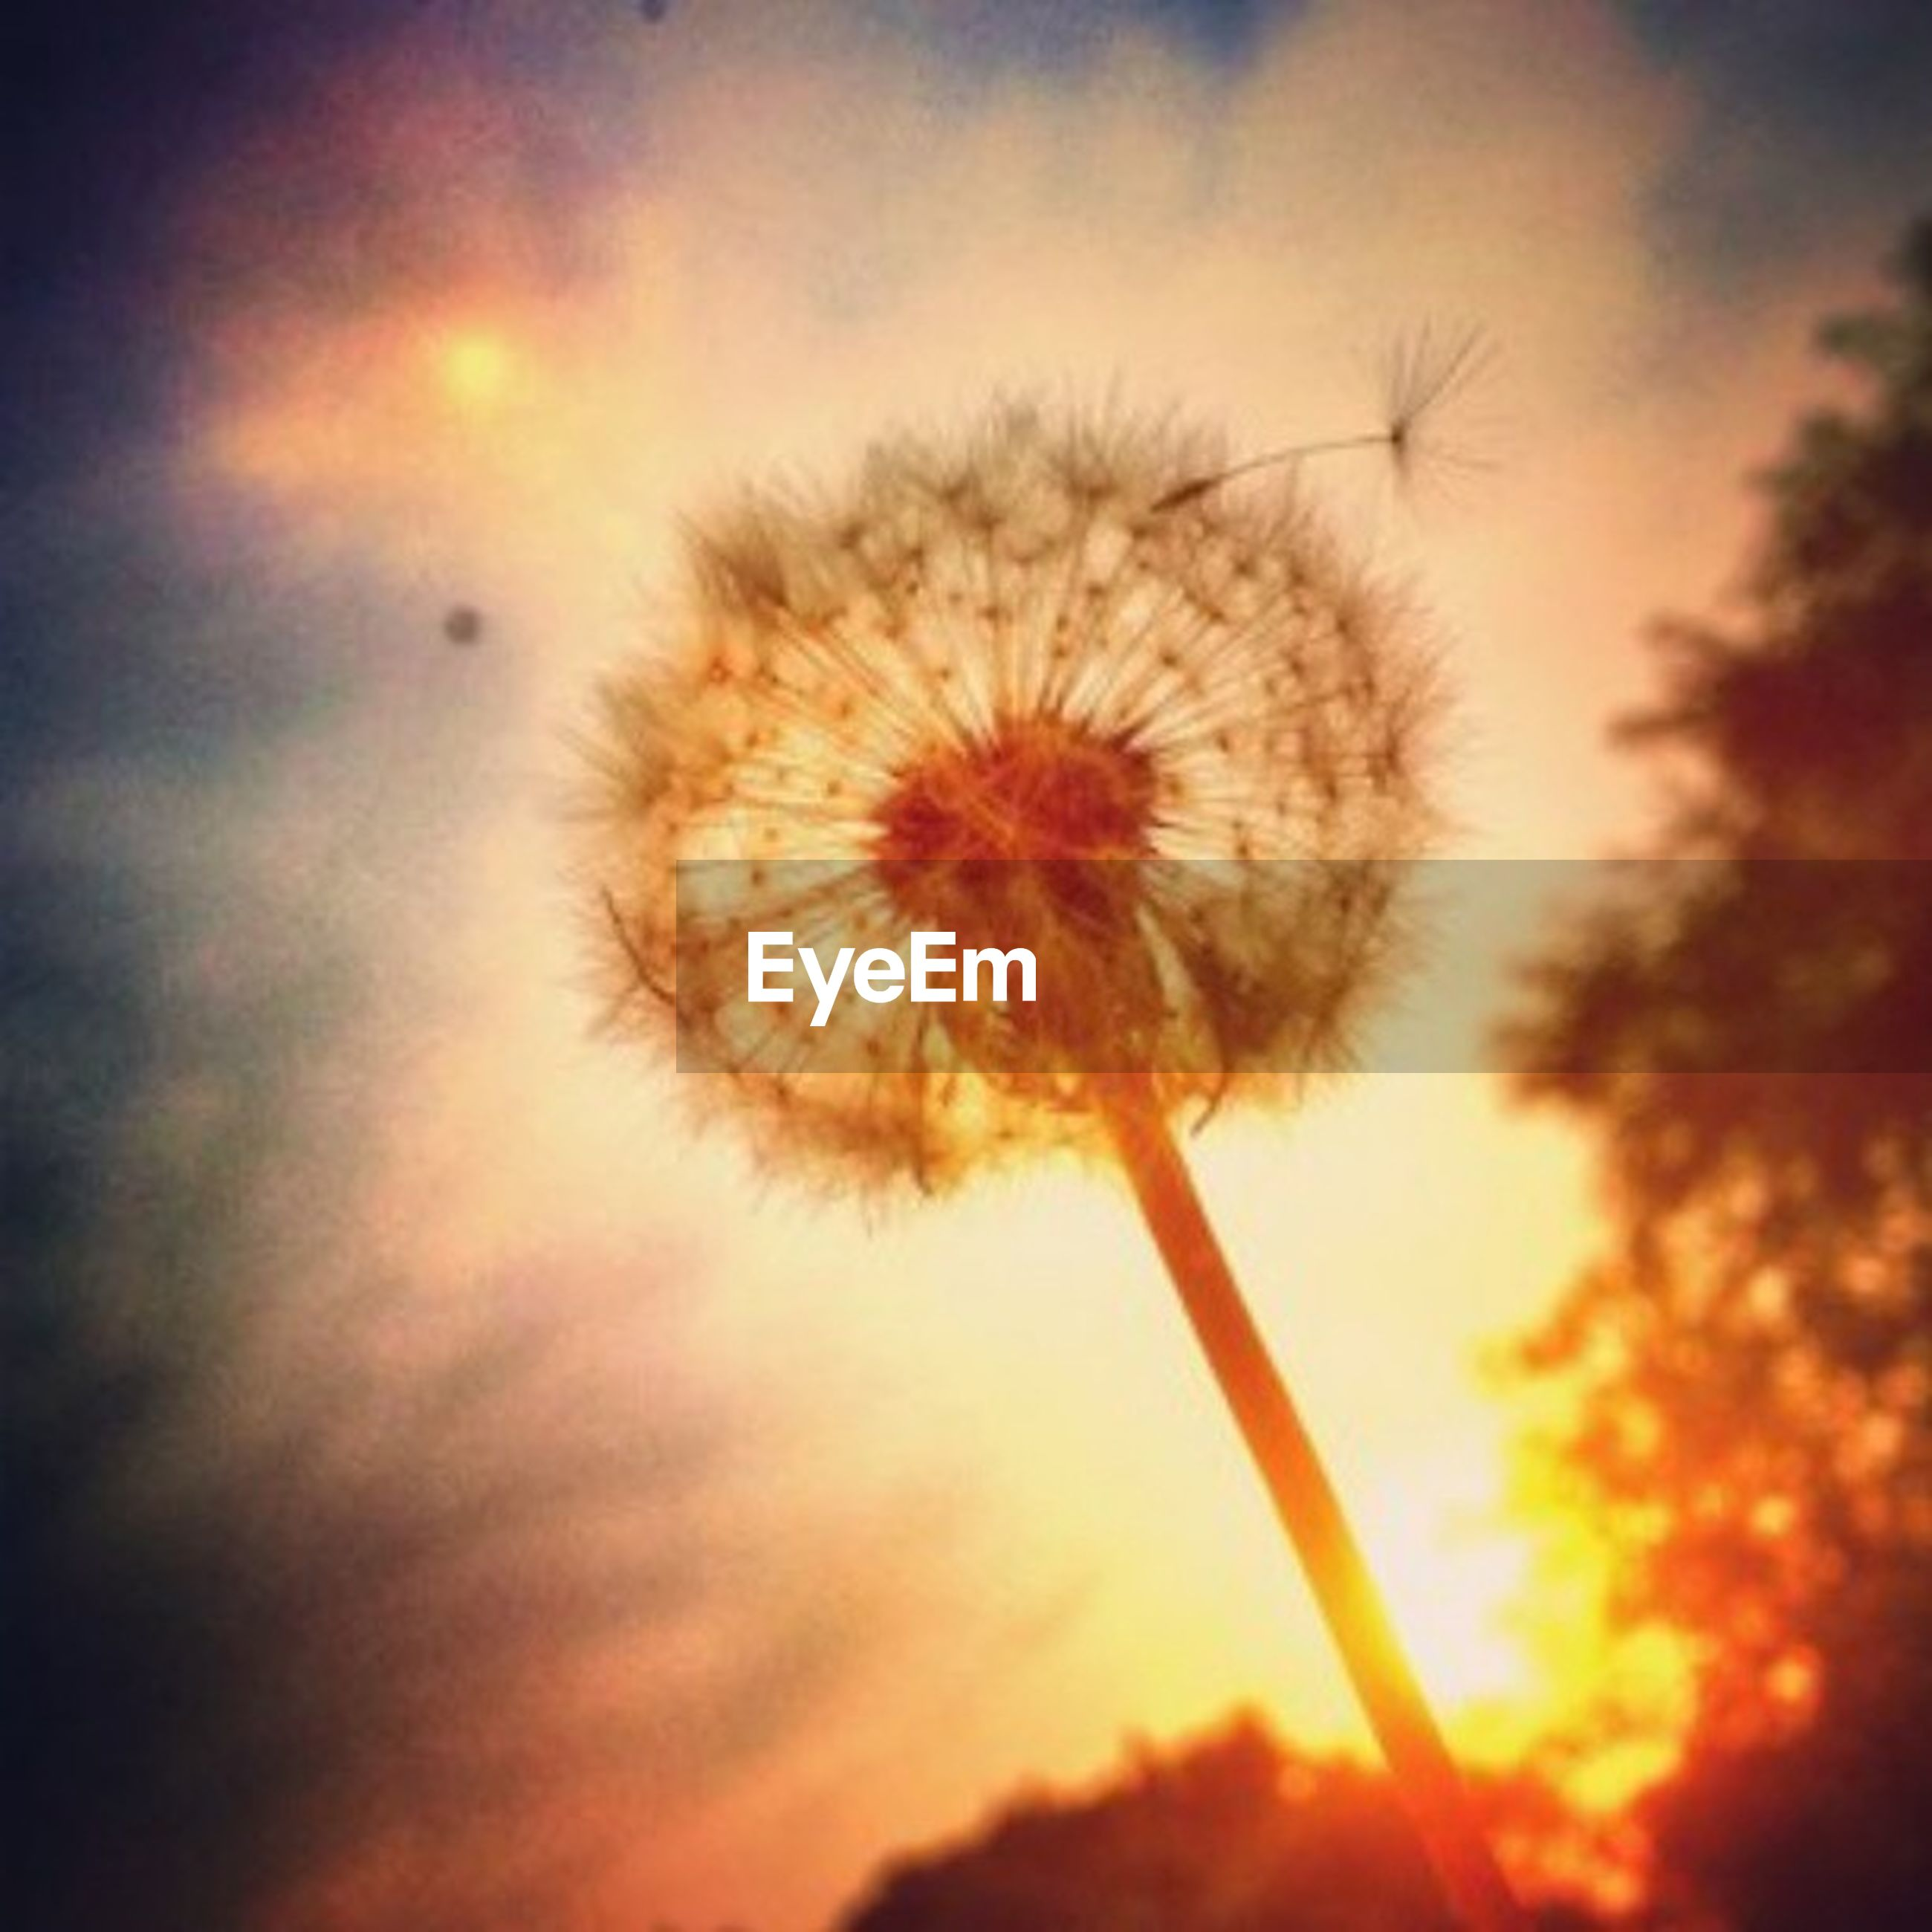 flower, dandelion, growth, fragility, beauty in nature, sunset, nature, freshness, flower head, stem, sky, plant, close-up, focus on foreground, silhouette, single flower, softness, outdoors, low angle view, no people